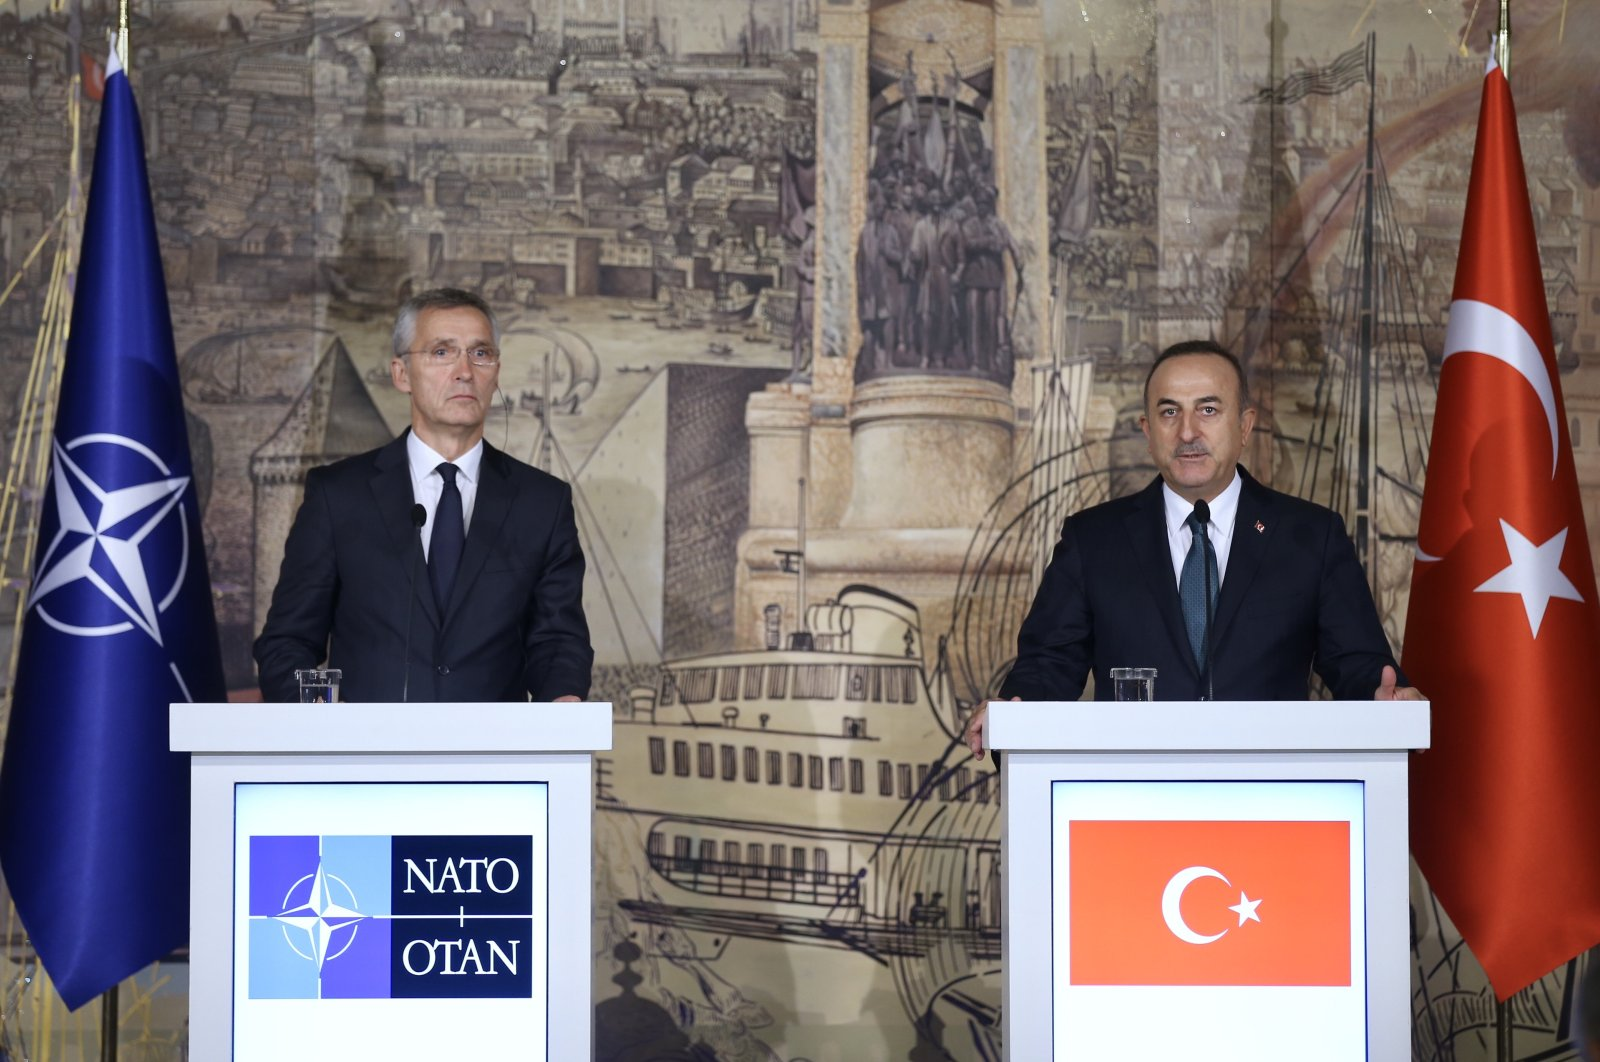 Foreign Minister Mevlüt Çavuşoğlu and NATO Secretary-general Jens Stoltenberg speak during a joint press conference in Istanbul, Oct.14, 2019. (AA)